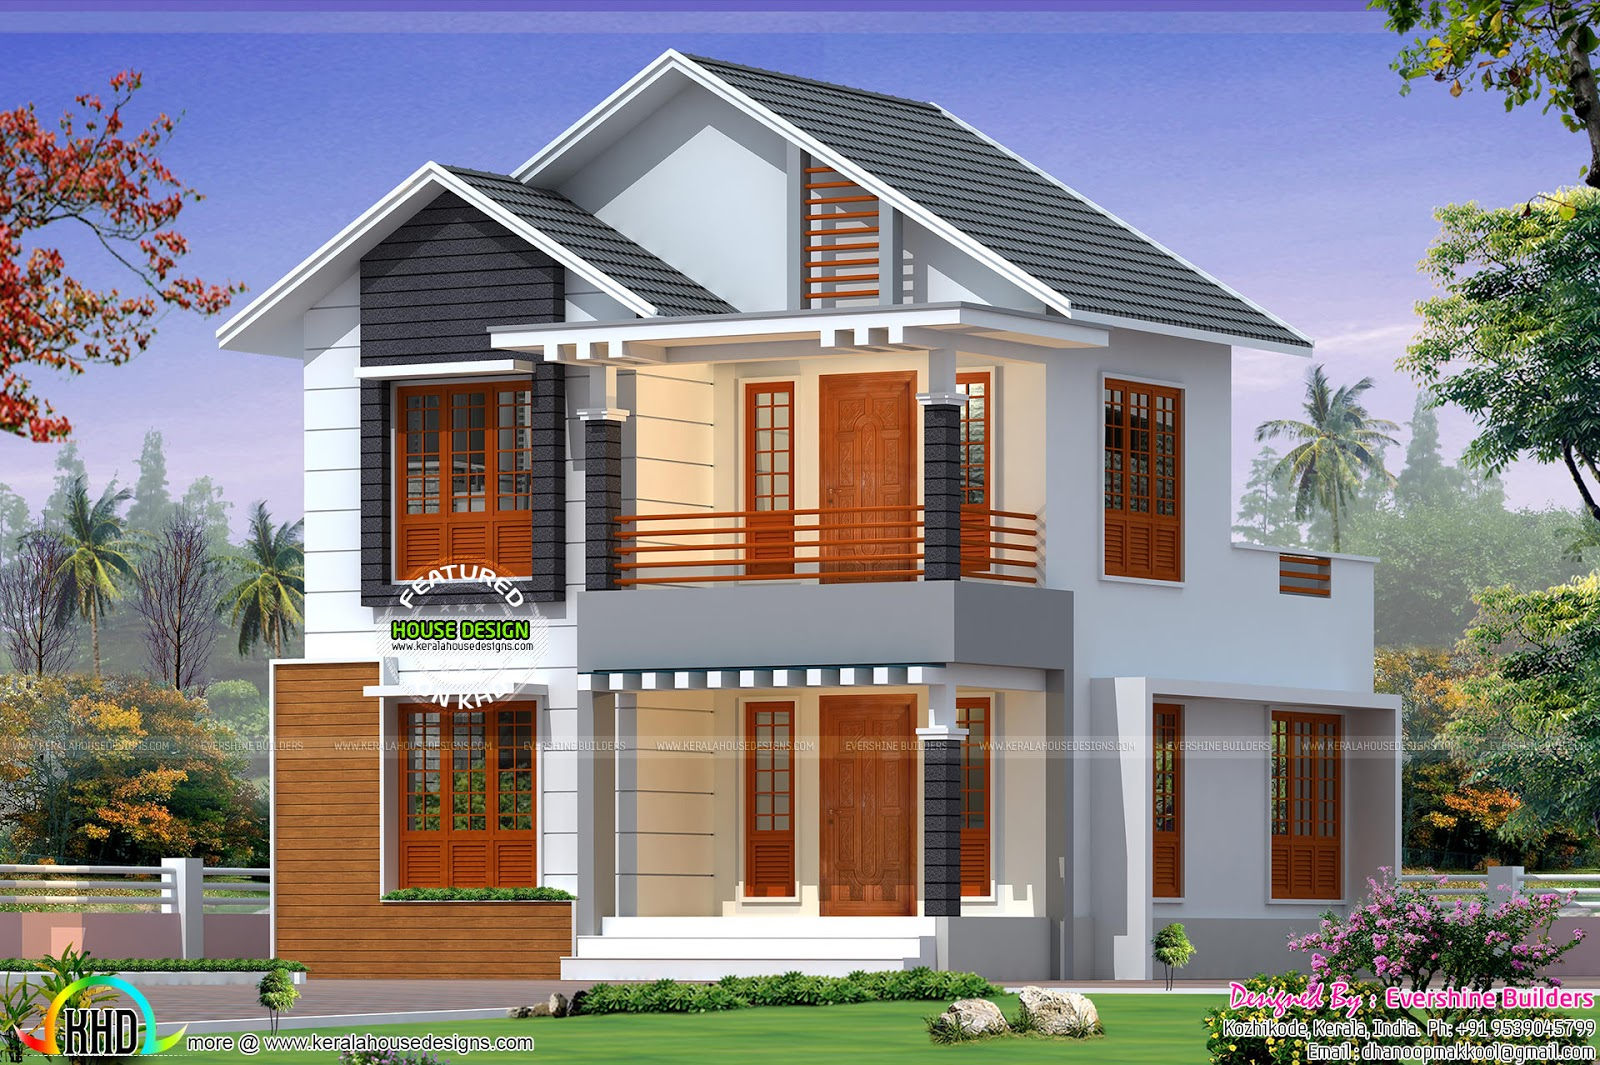 Cute little sloping roof house kerala home design and for Cute house plans